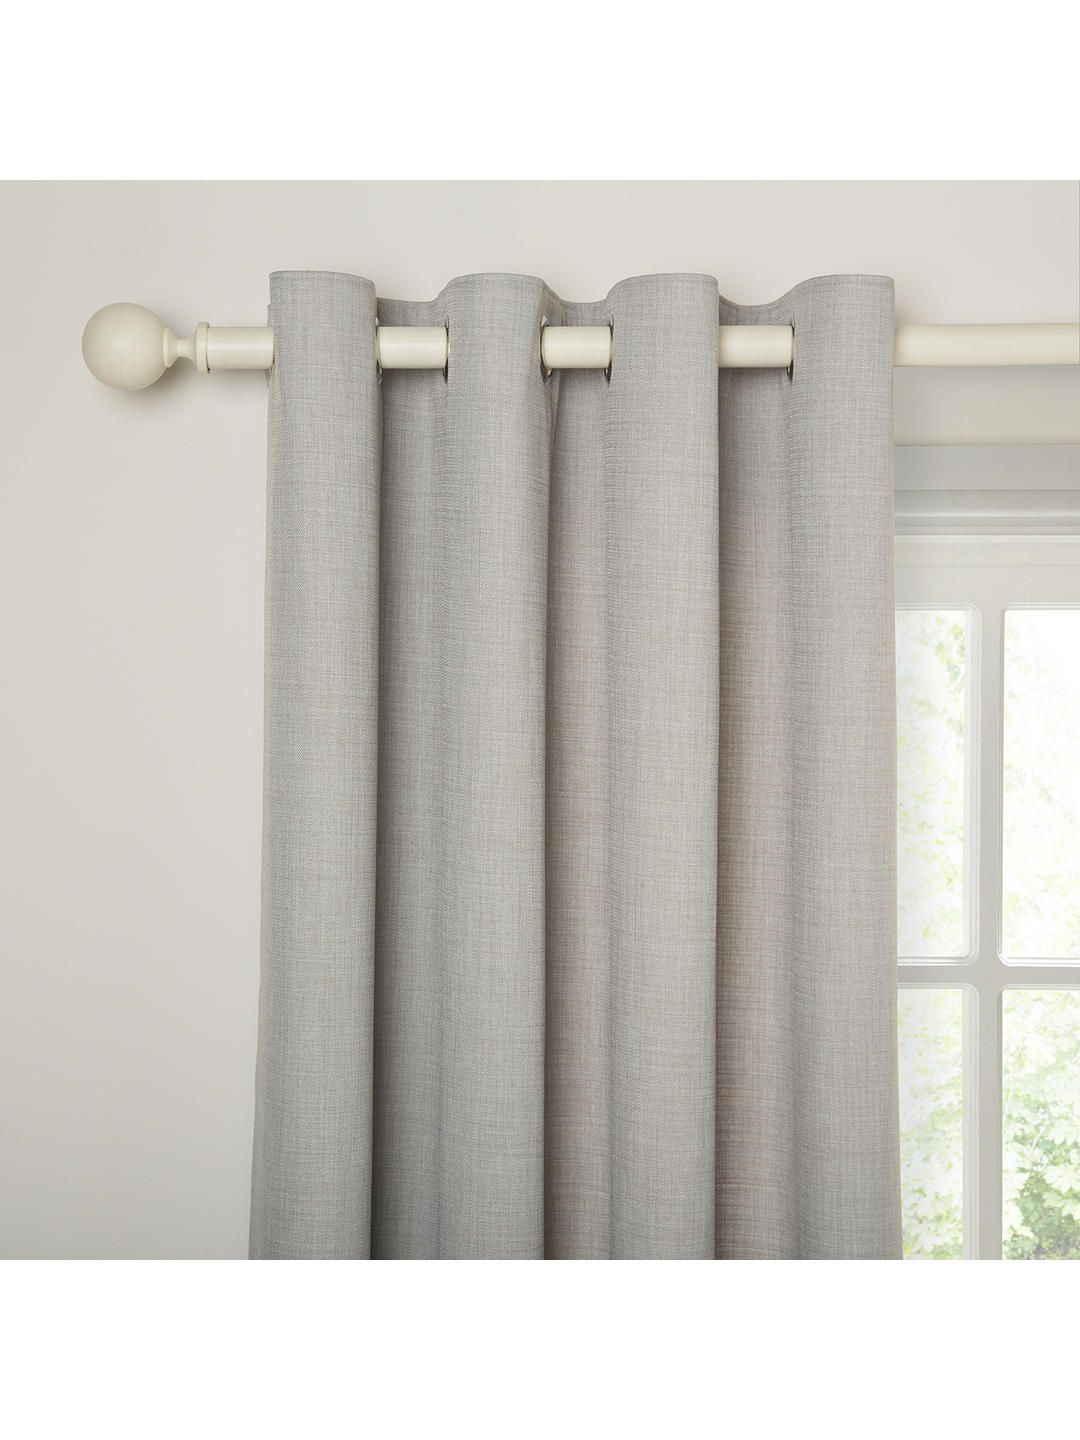 John Lewis Partners Barathea Pair Lined Eyelet Curtains Blue Grey In 2020 Curtains Panel Curtains Curtains Width